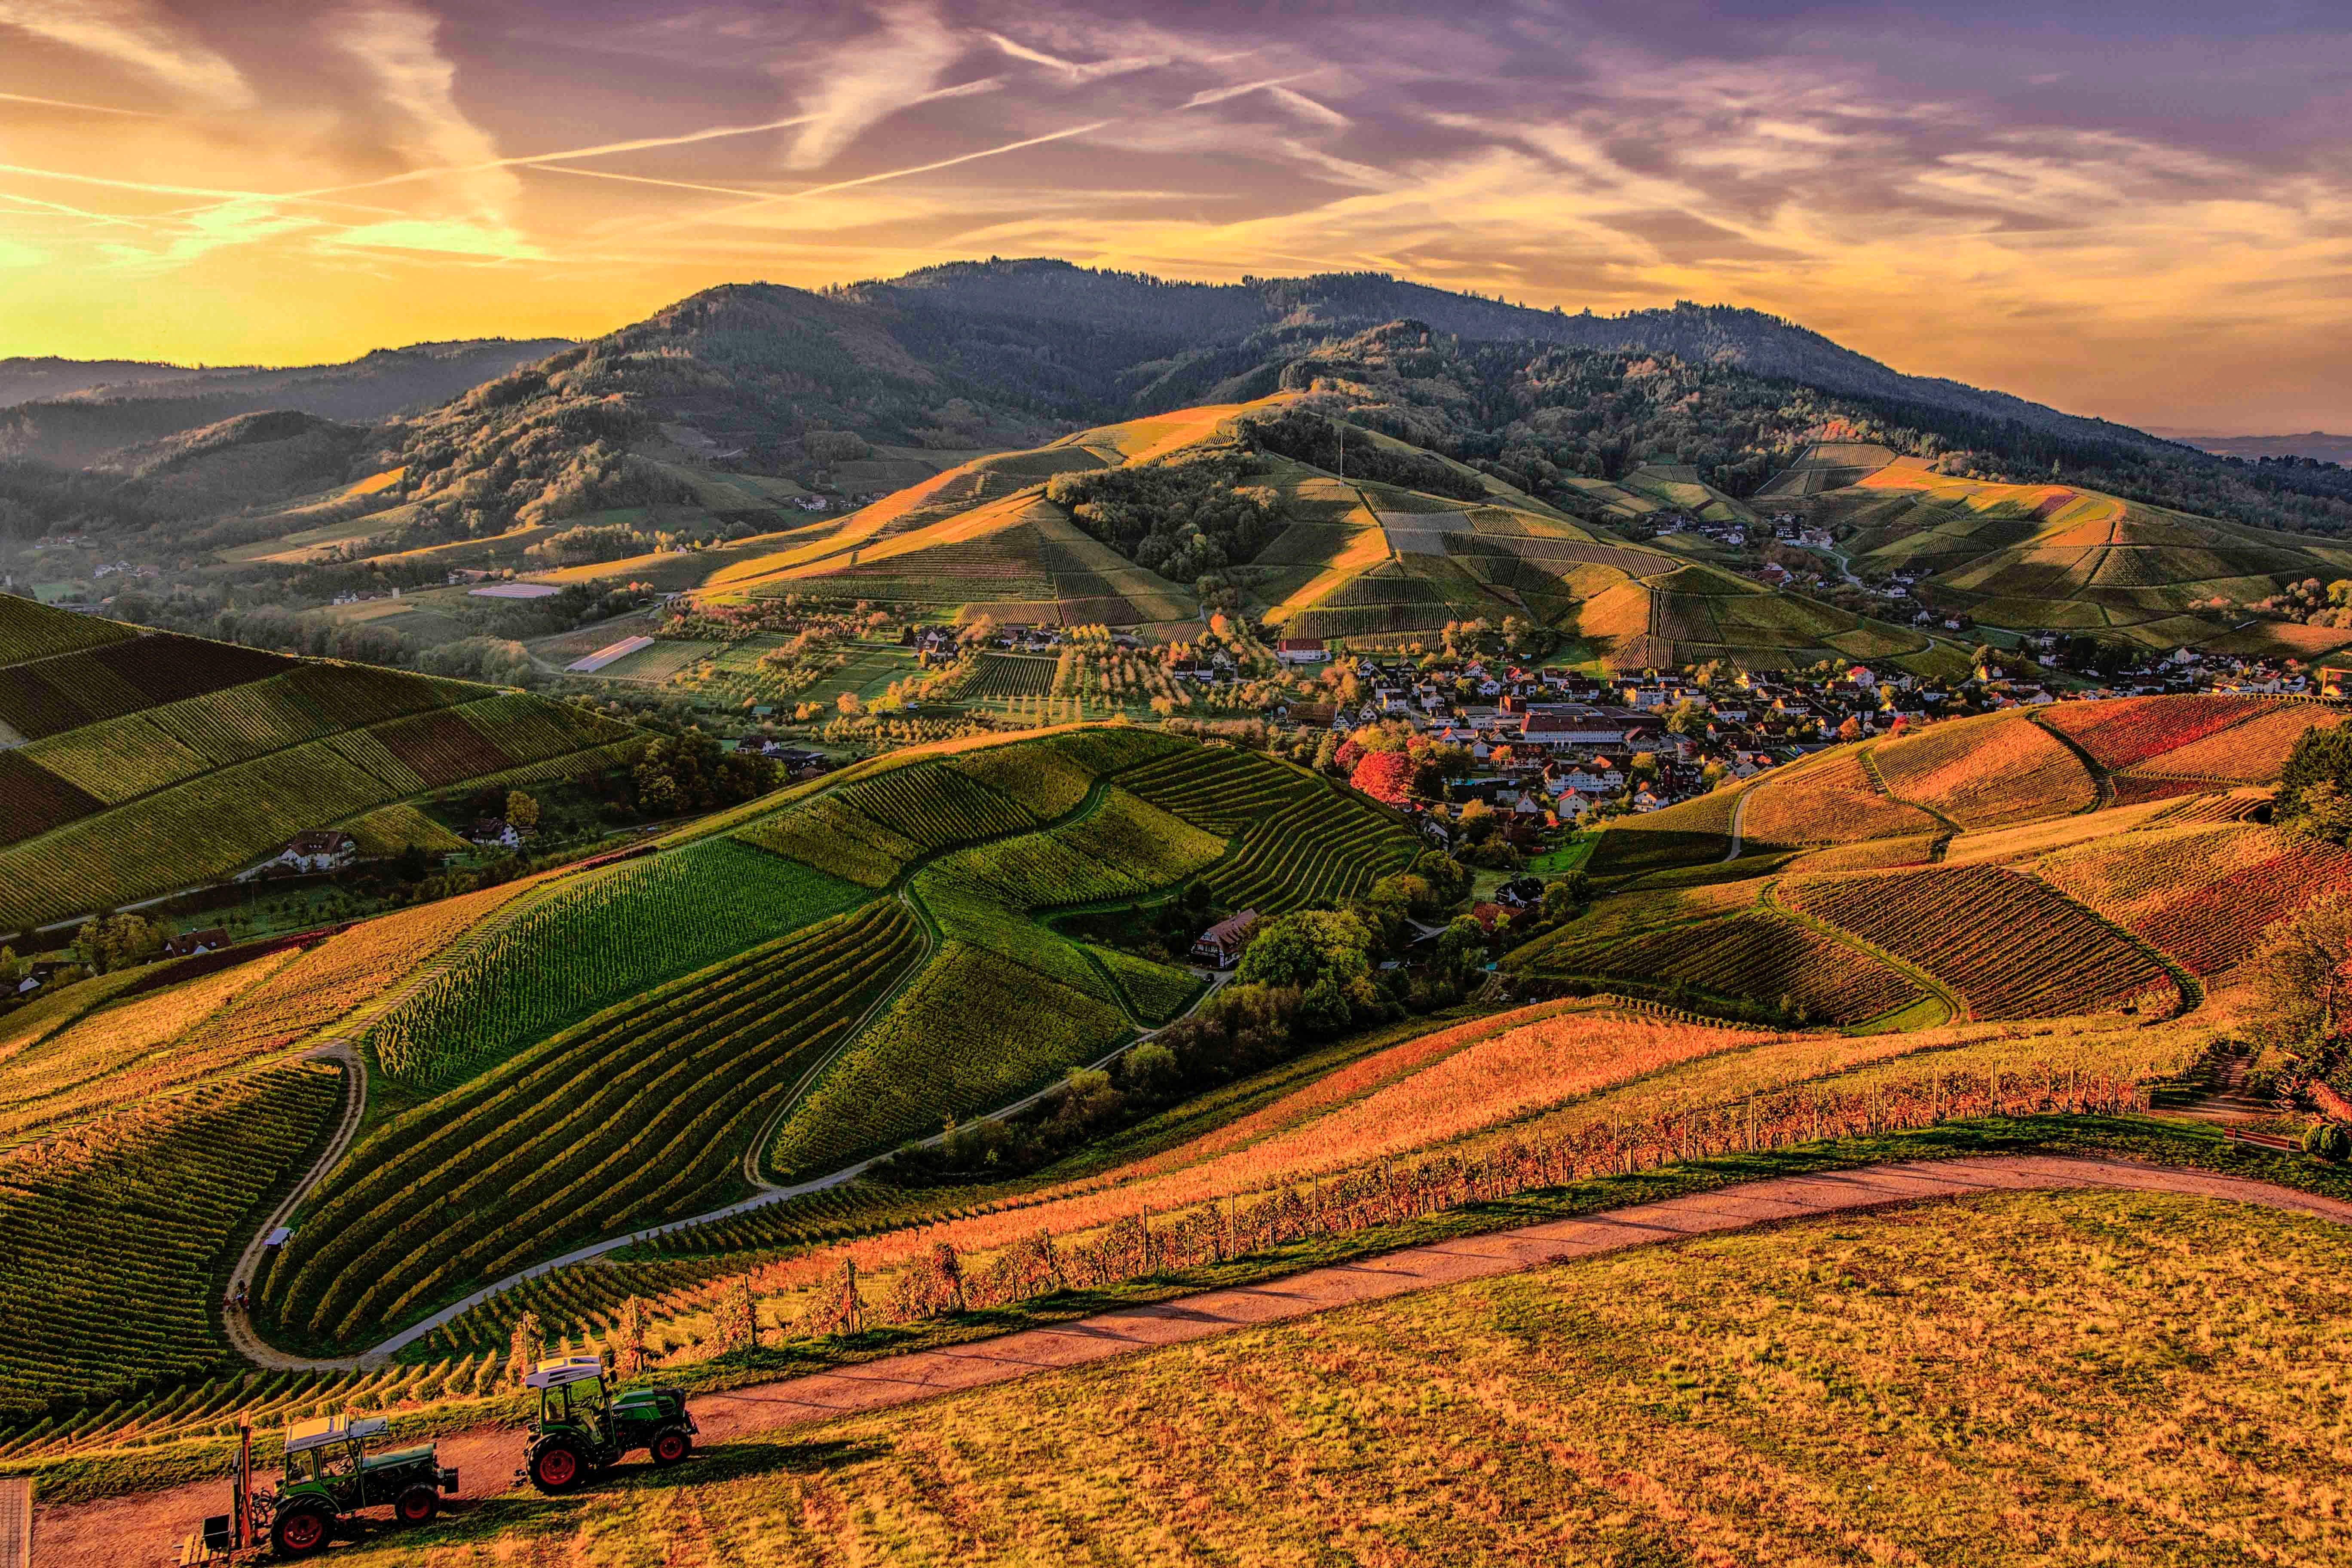 Brown and Green Mountain View Photo, Outdoors, Nature, Mountains, Houses, HQ Photo